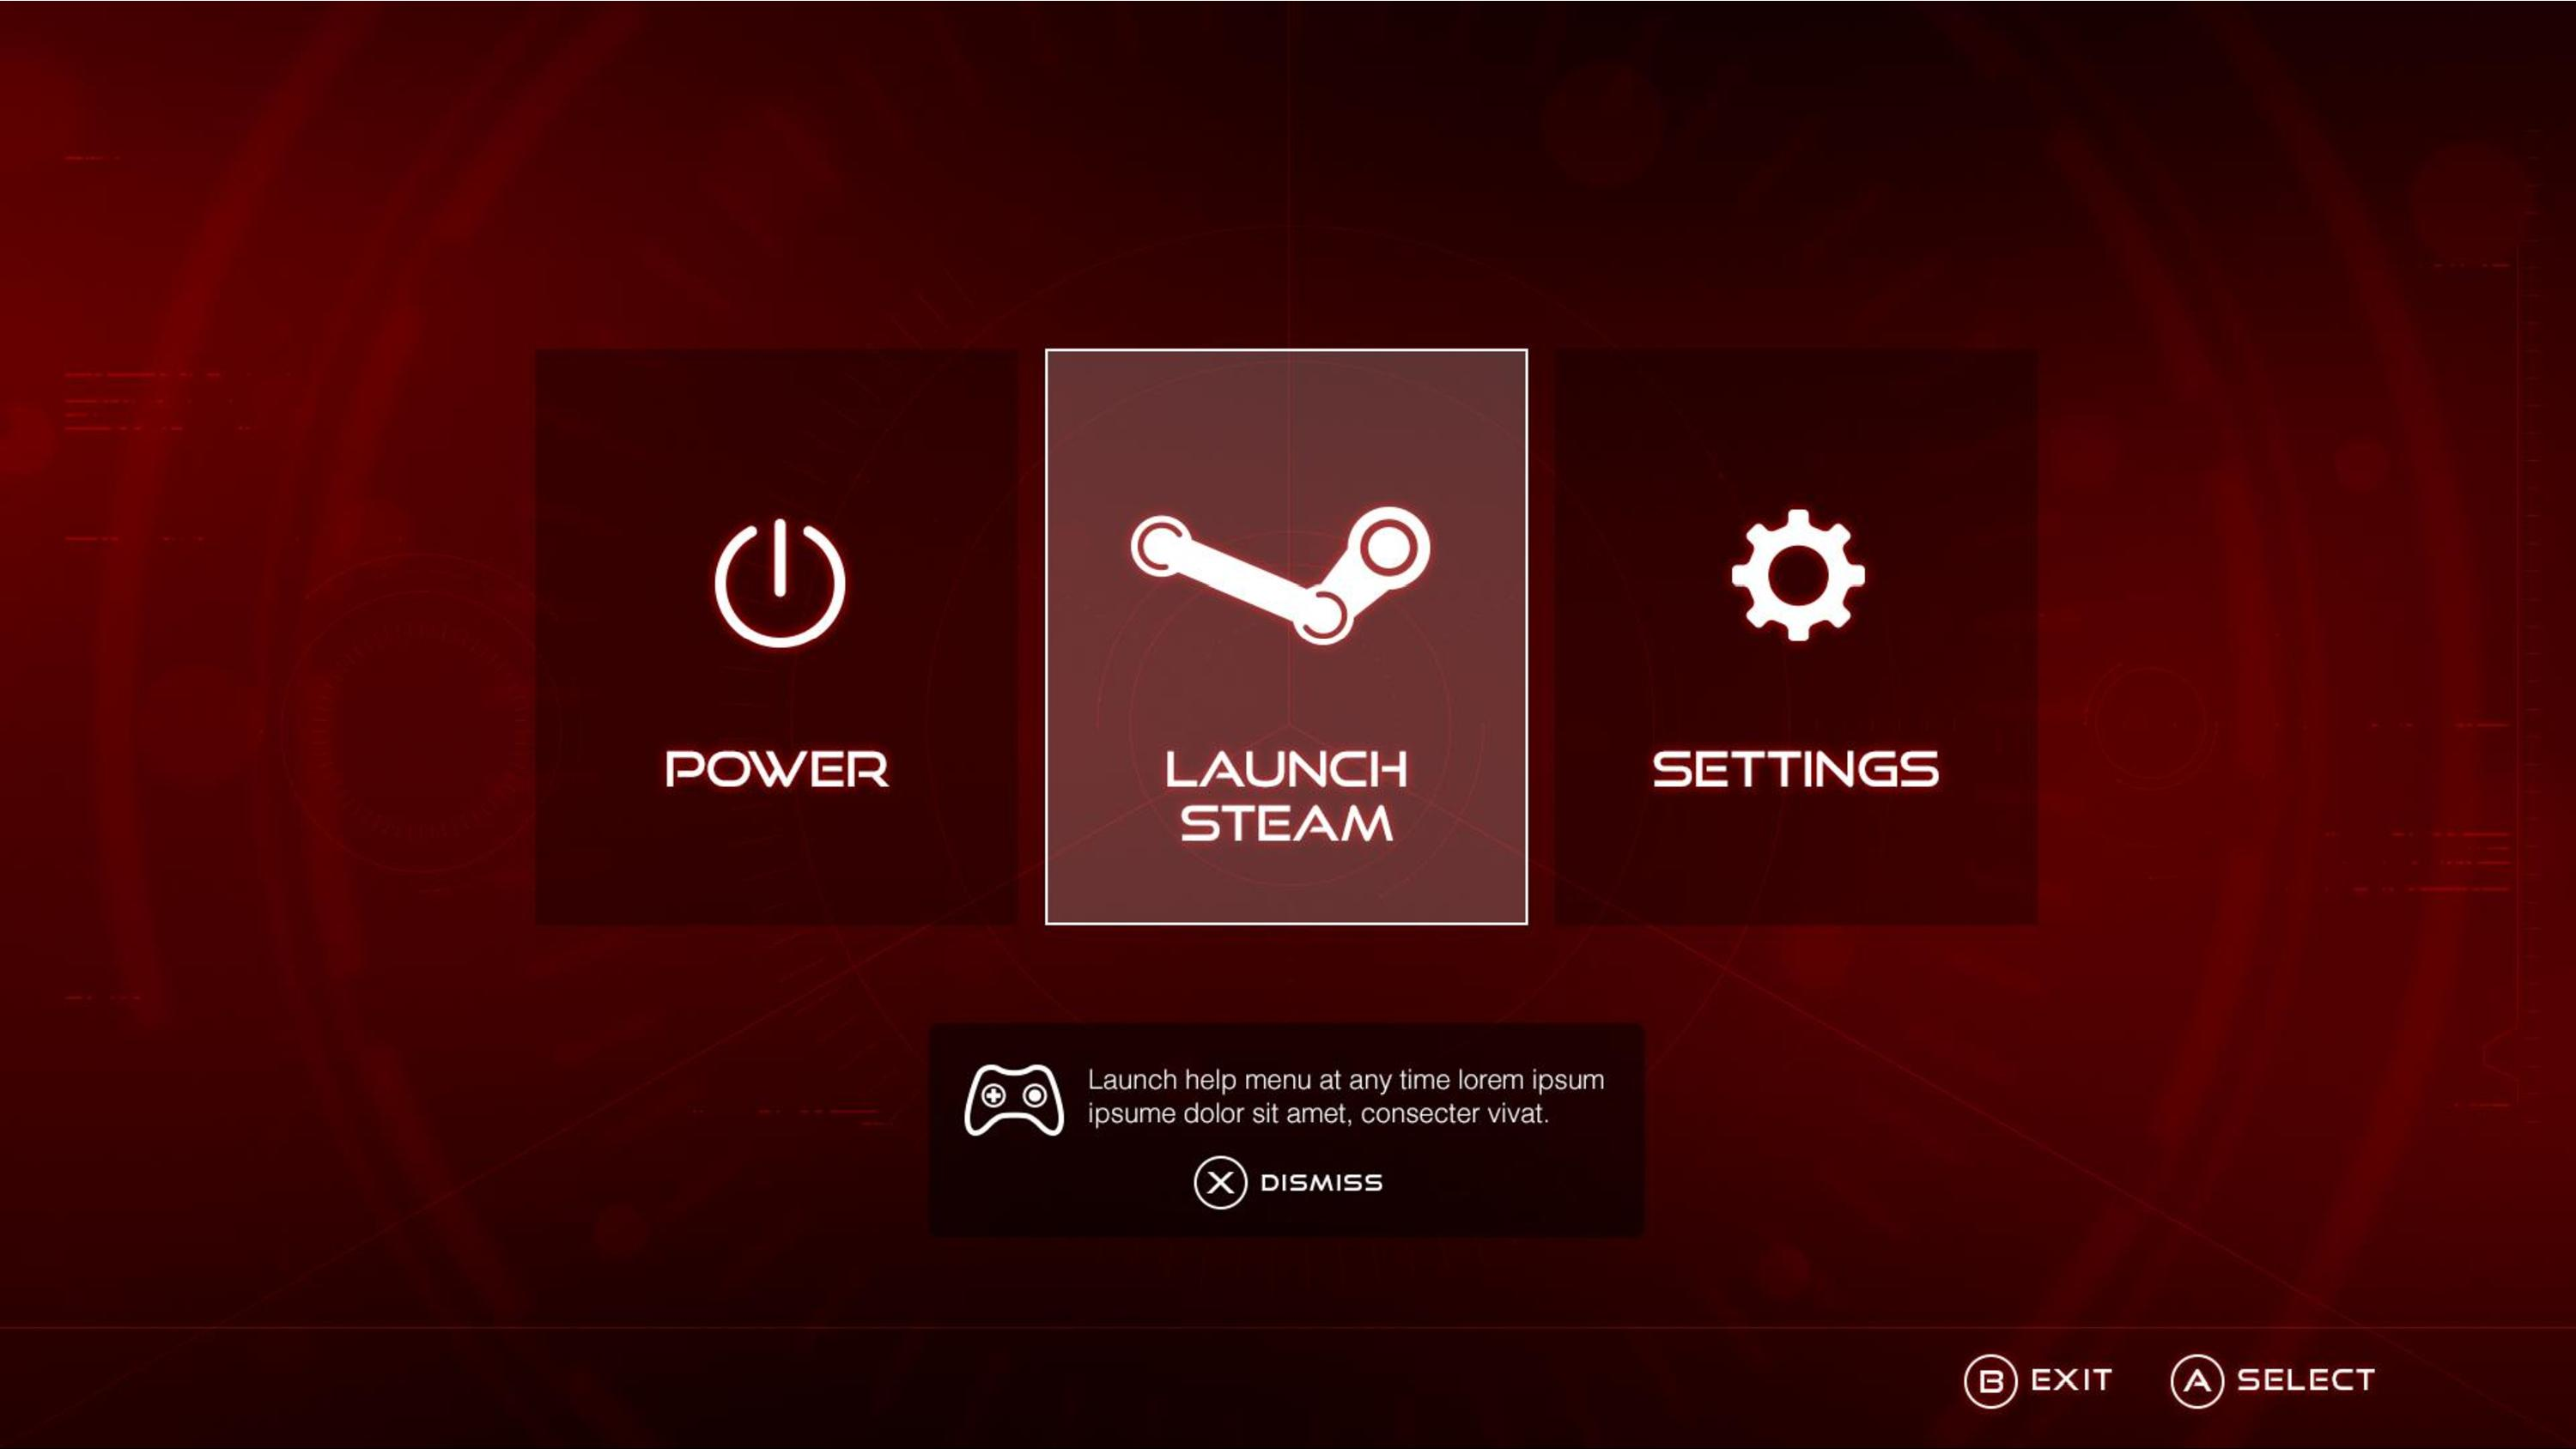 Alienware Alpha ausprobiert: Fast lautlose Steam-Machine mit eigenem Windows-UI -